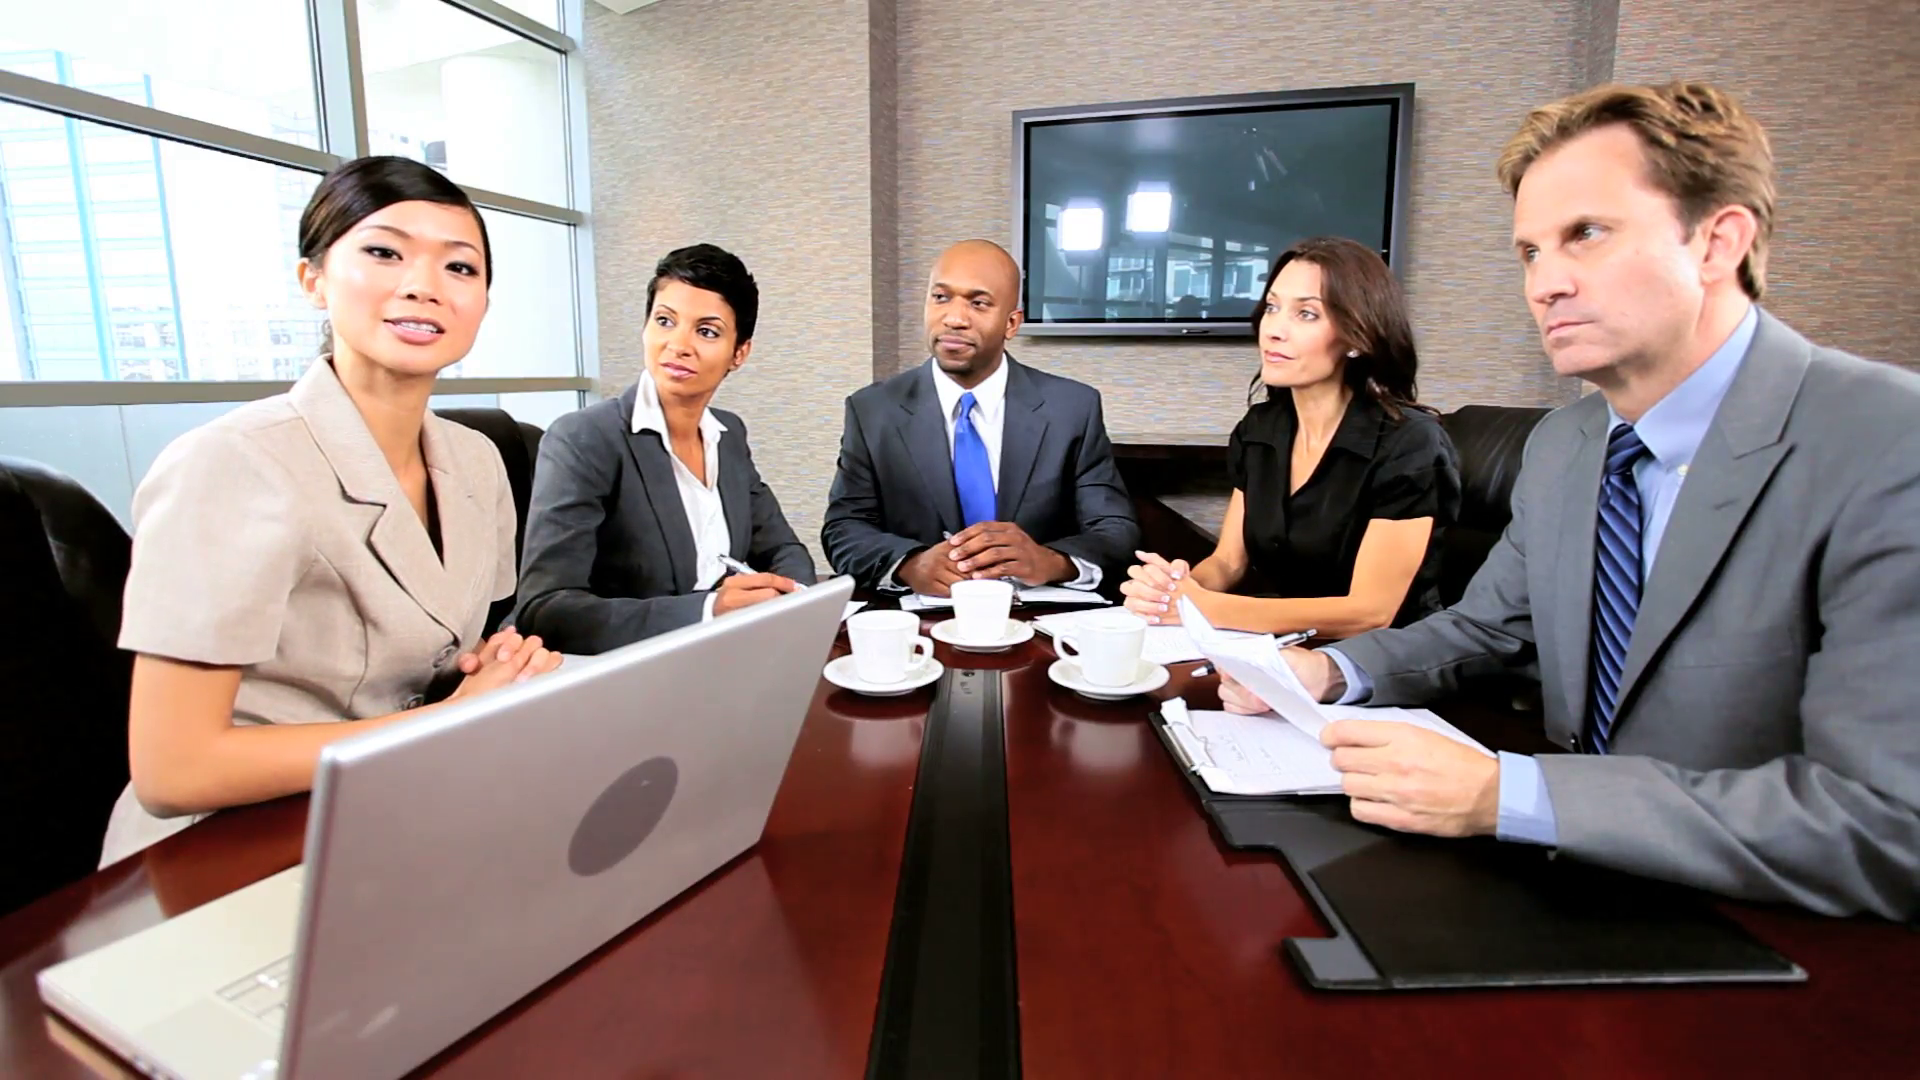 Meeting Wallpapers Top Free Meeting Backgrounds